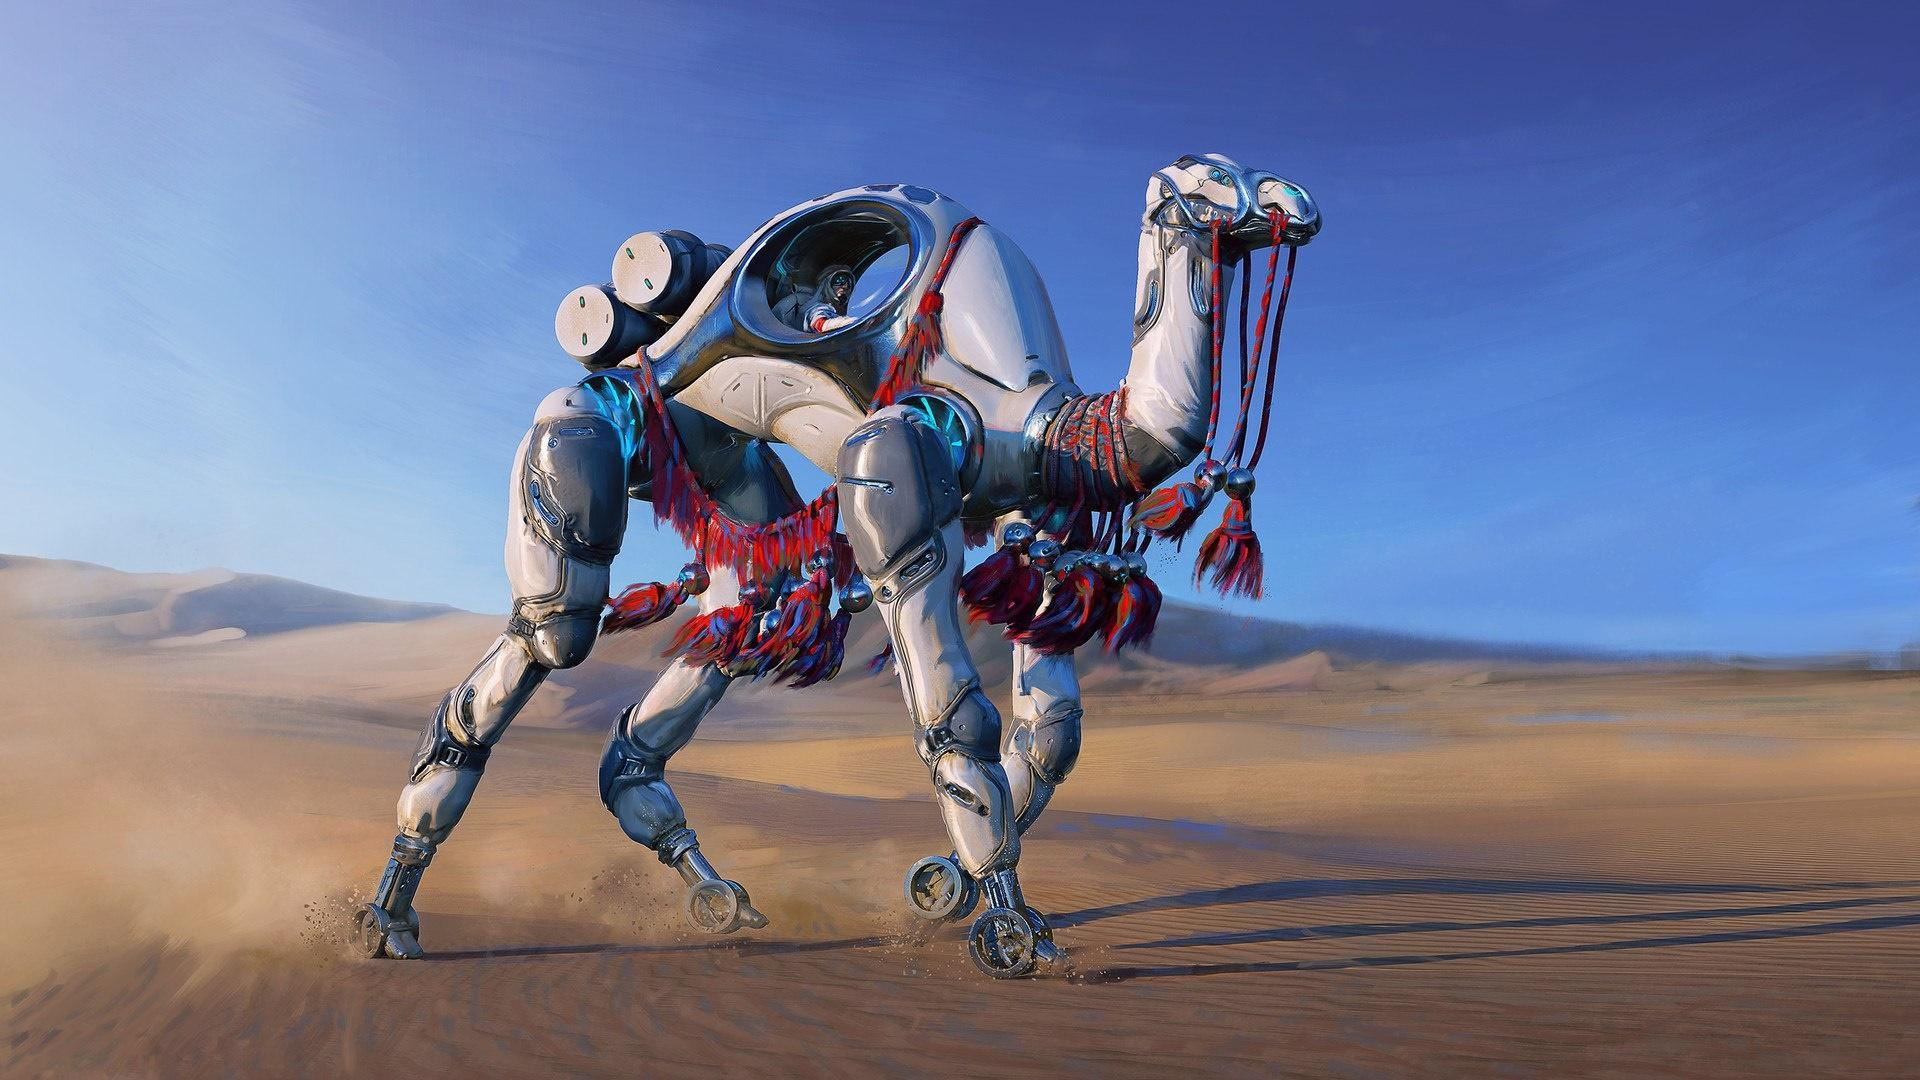 Mechanic Camel HD Wallpapers